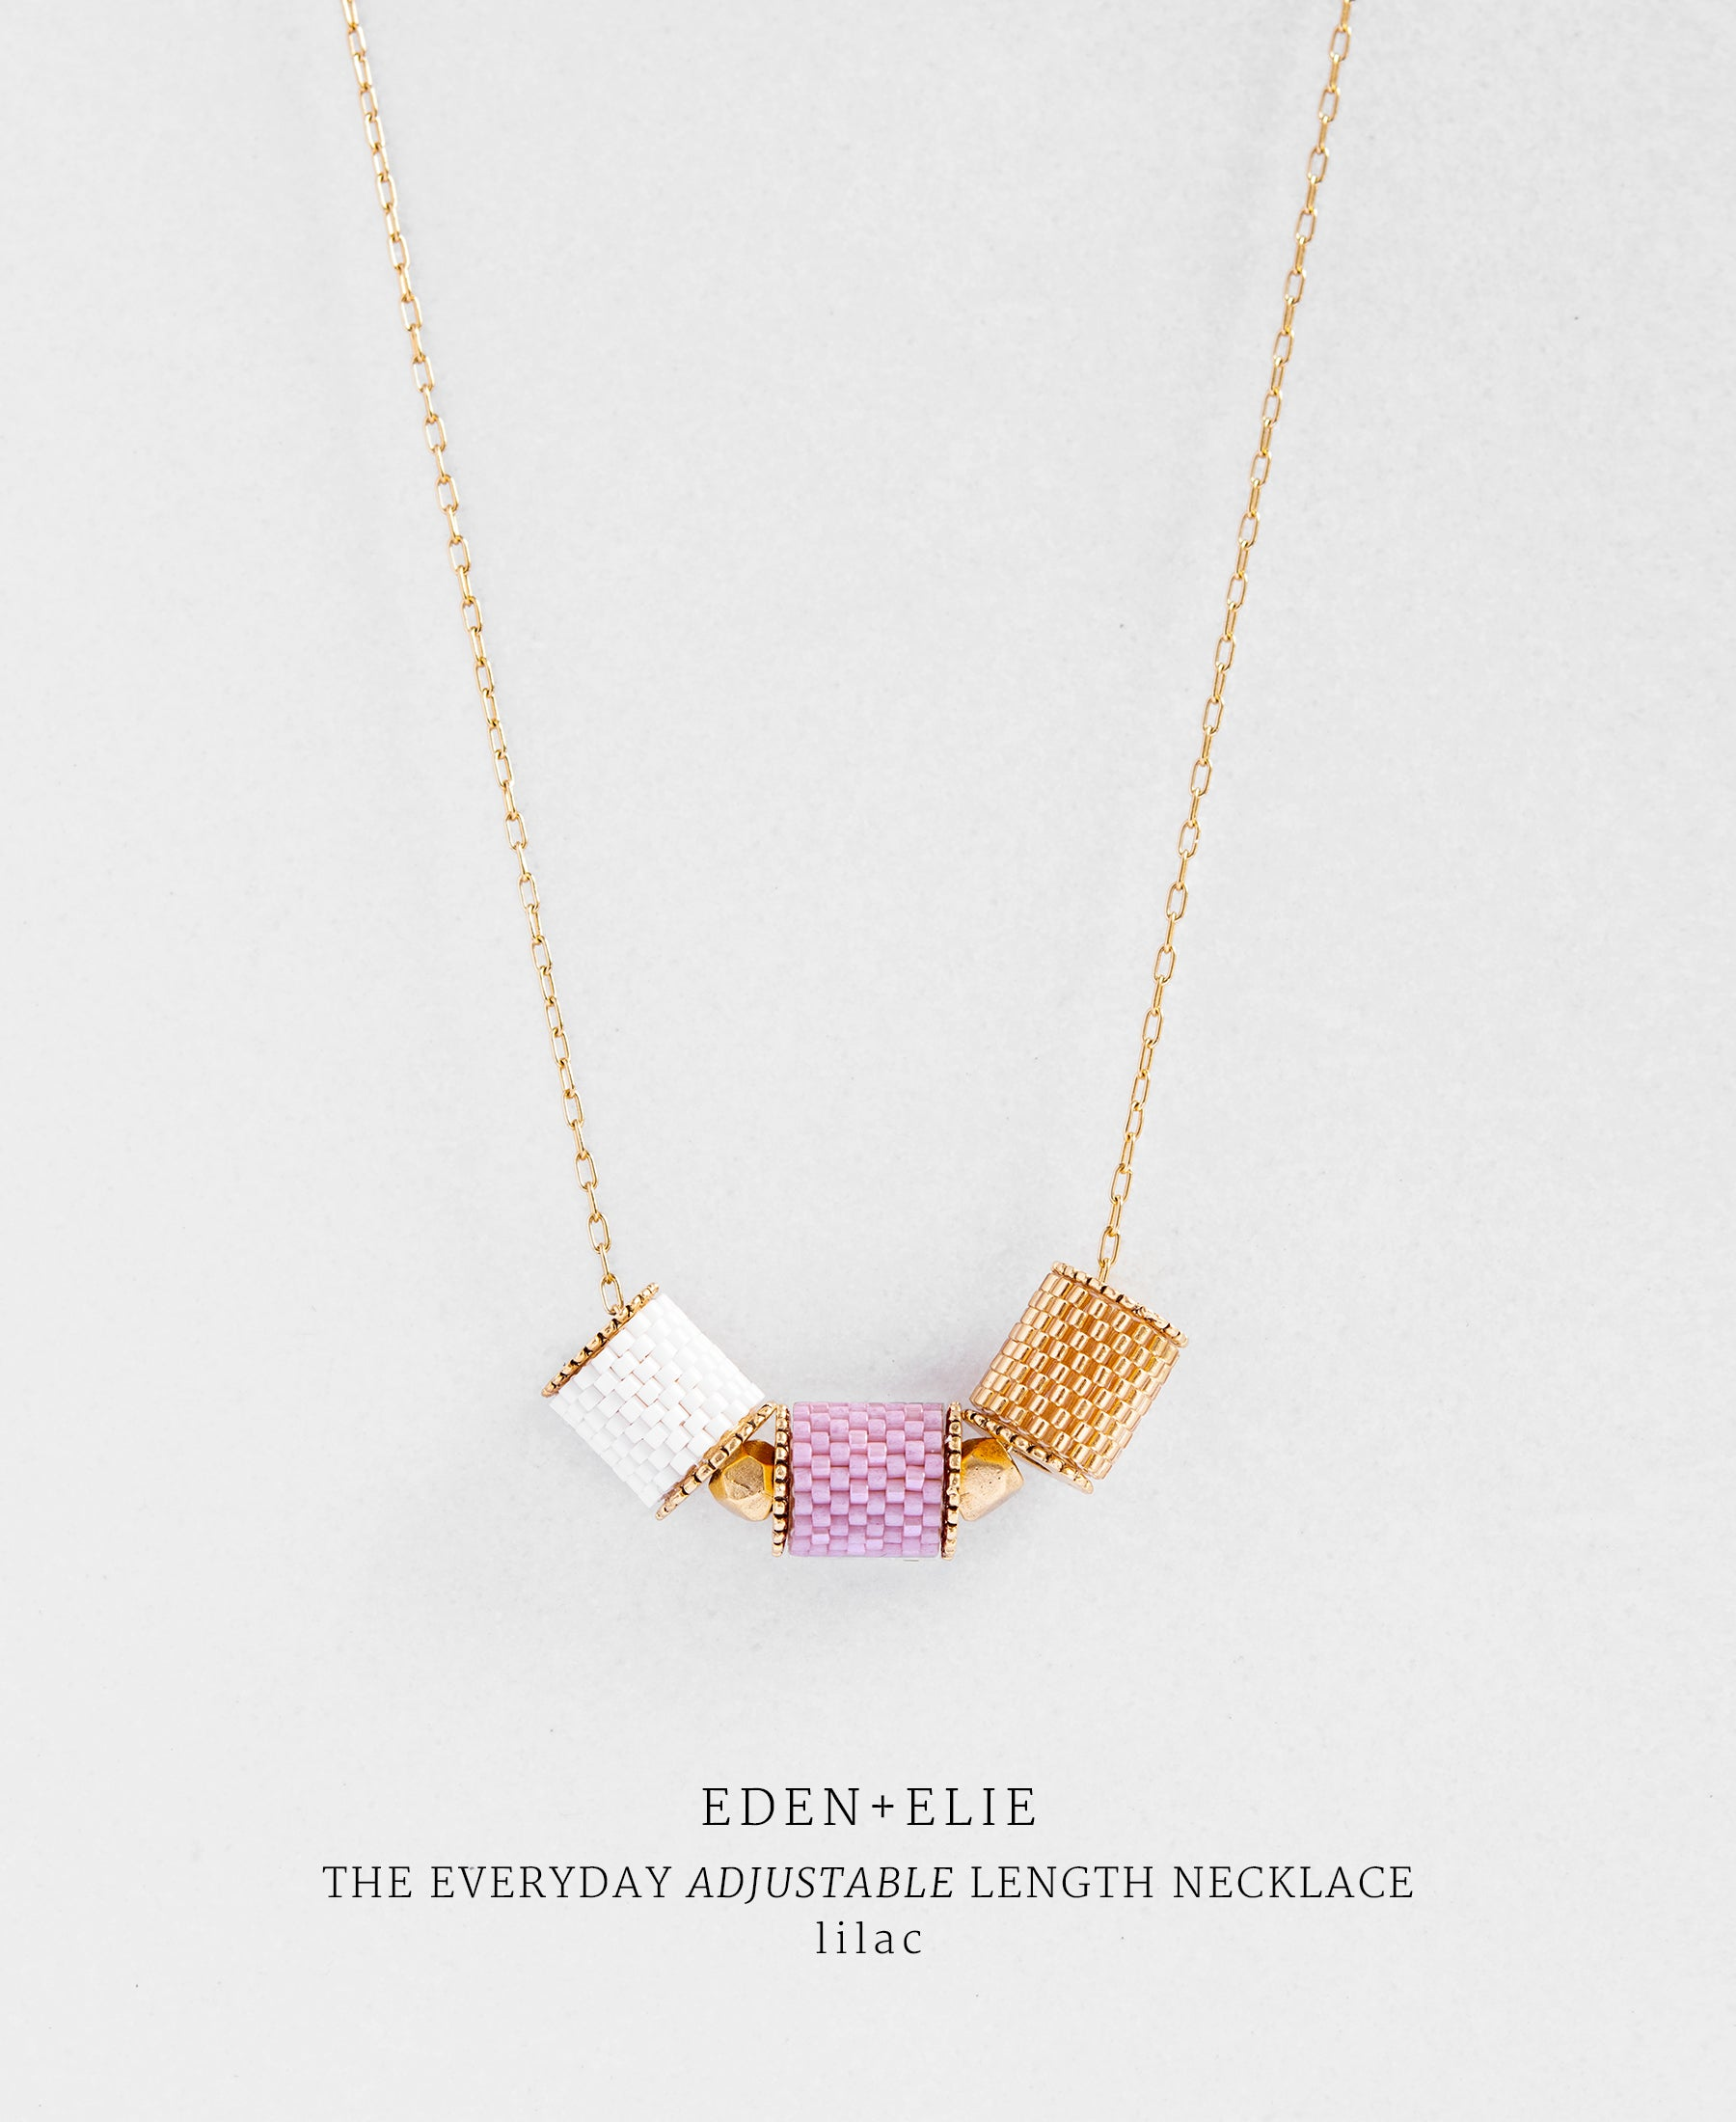 EDEN + ELIE Everyday adjustable length necklace - lilac purple